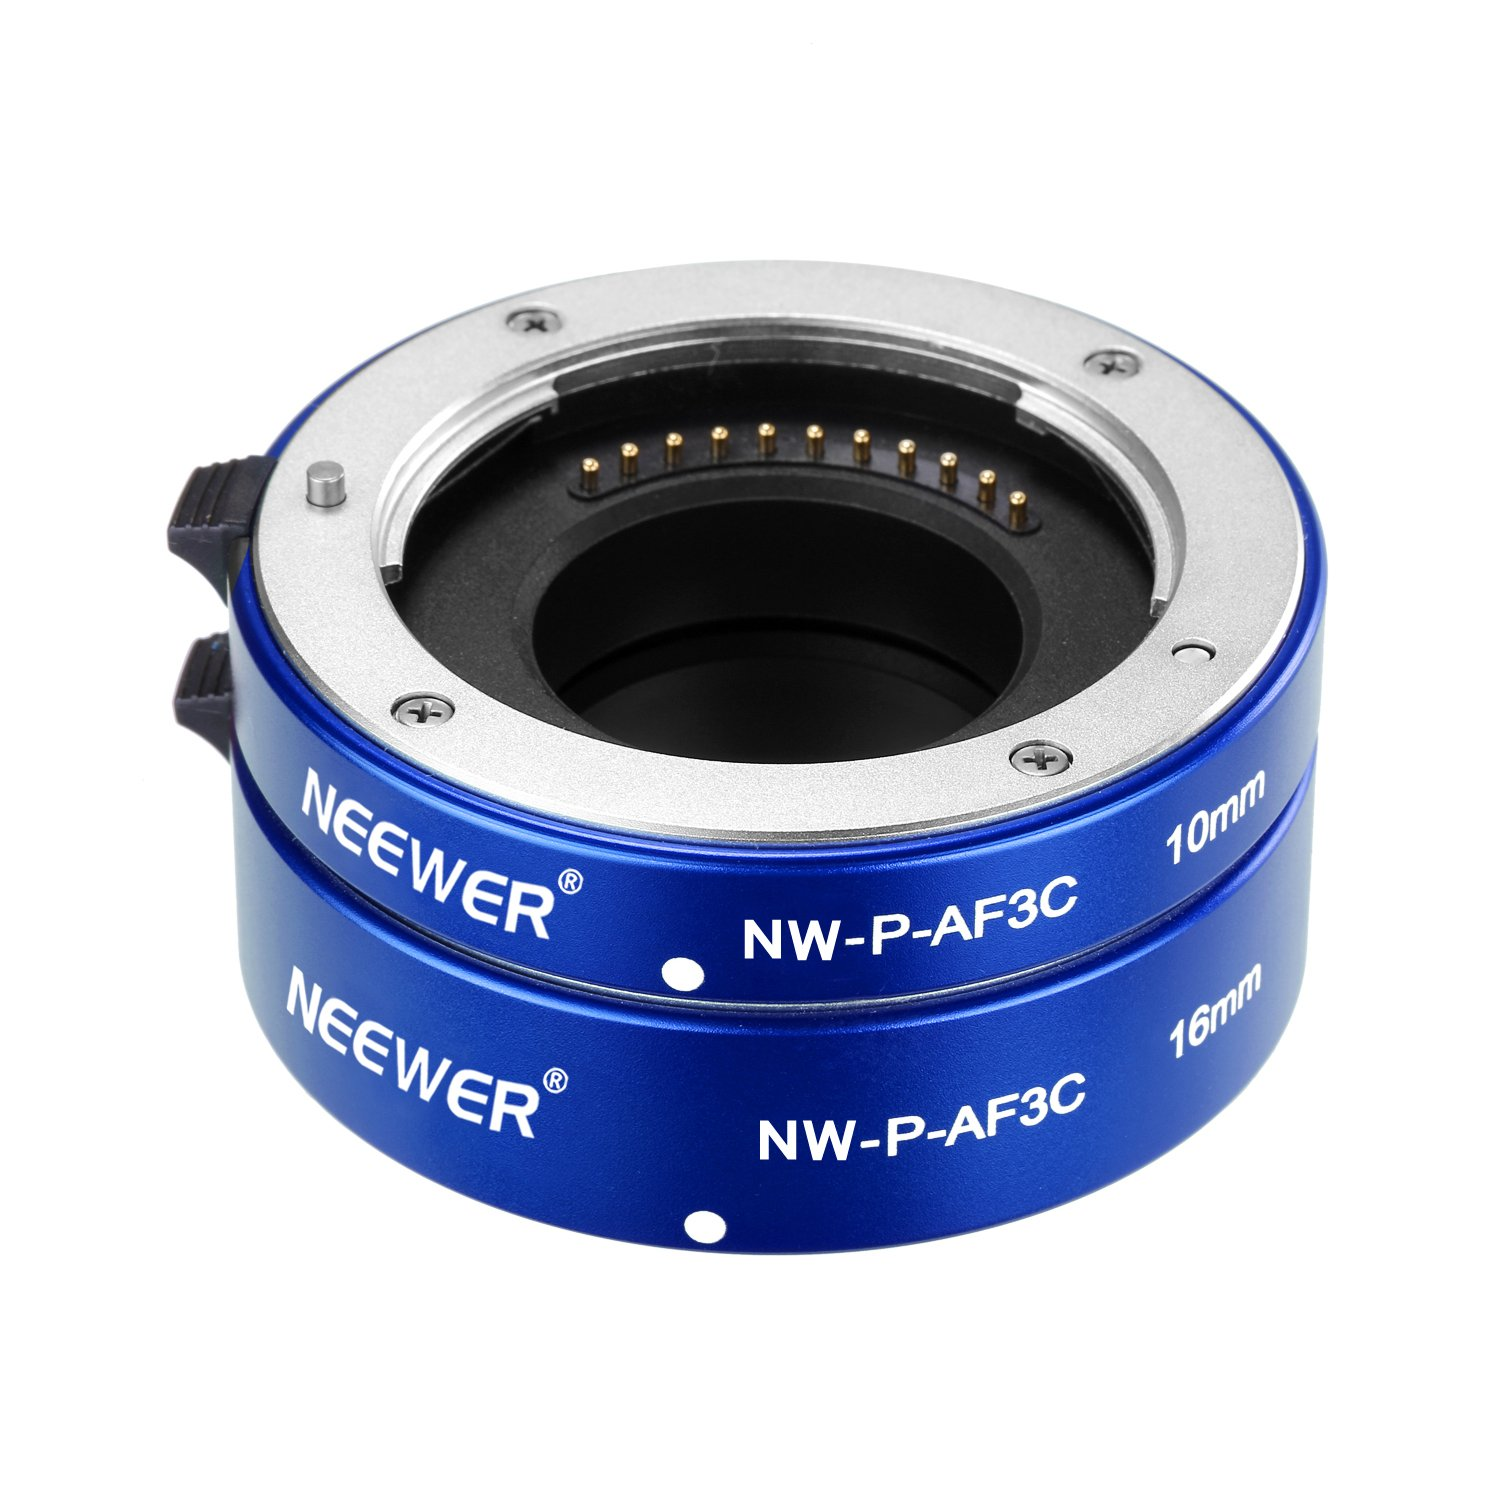 Neewer All-Metal Auto Focus Macro Close-up Extension Tube Set 10mm,16mm for Micro Four Thirds(Micro-4/3) Mirrorless Cameras, fits Panasonic G1 G2 G3 G10 GH1 GH2 Olympus E-P1 E-P2 E-P3 E-P5 E-PL1